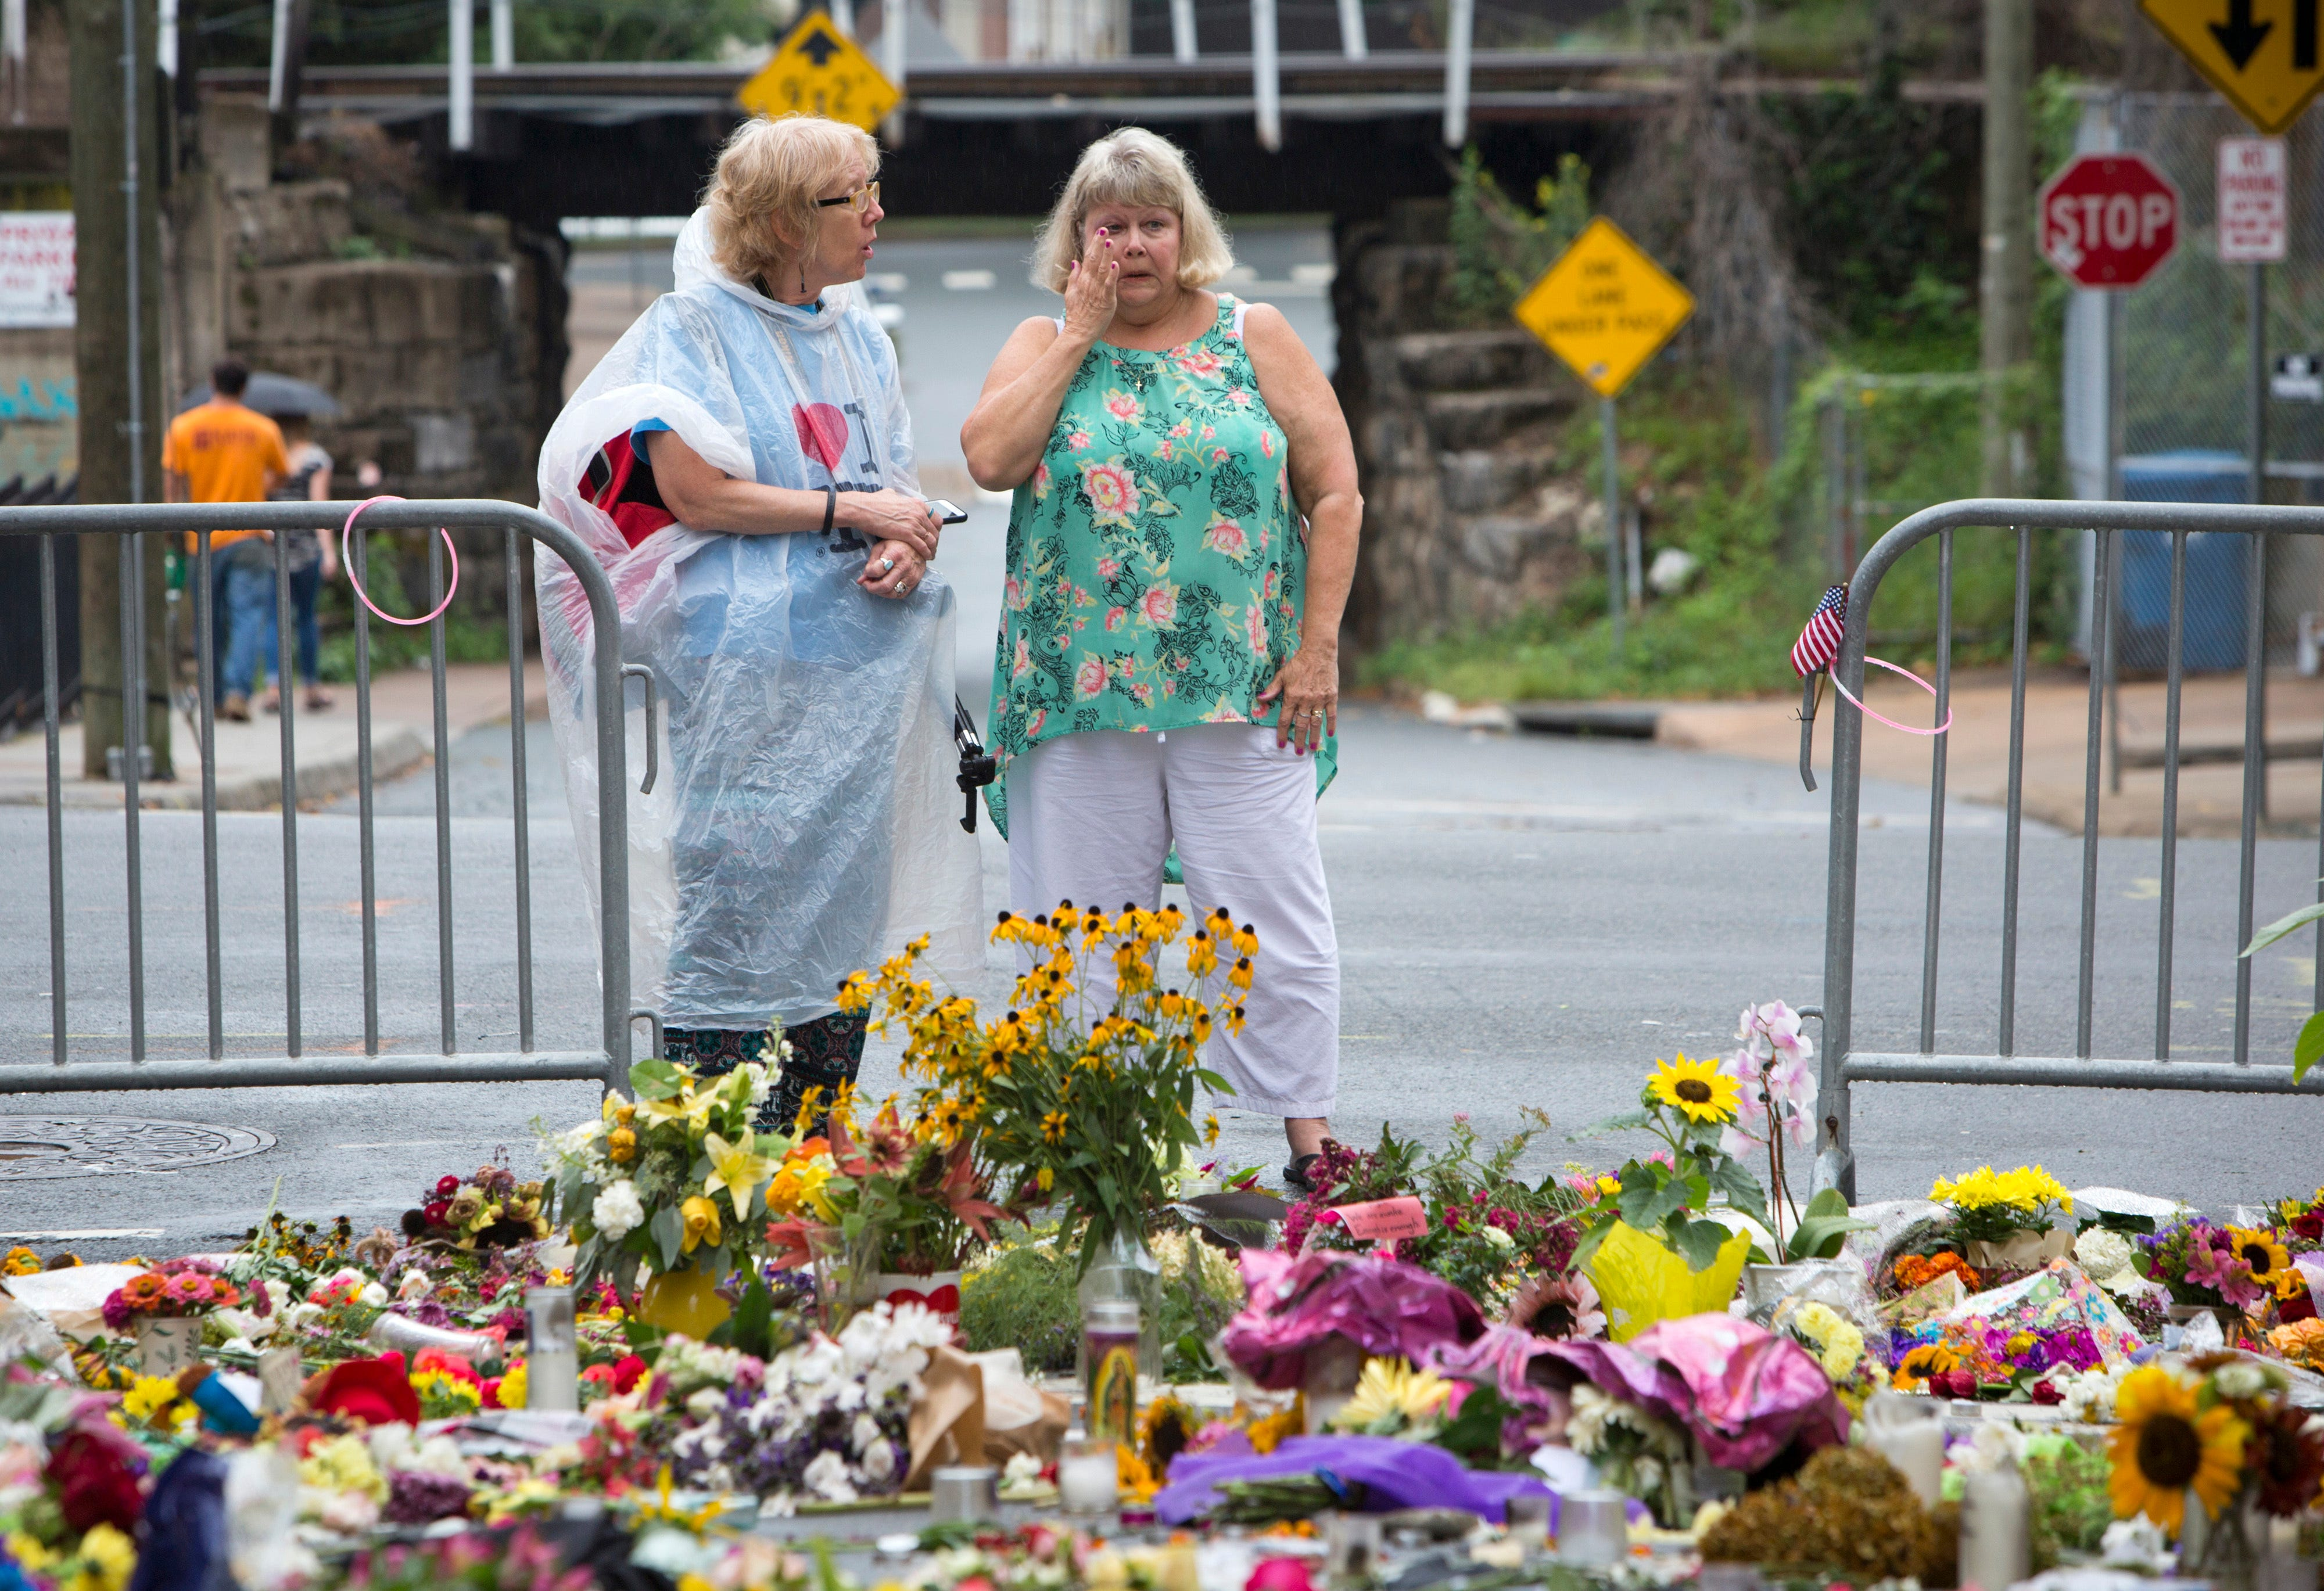 Mourners gather for vigil to honor young woman killed in aftermath of Charlottesville protests